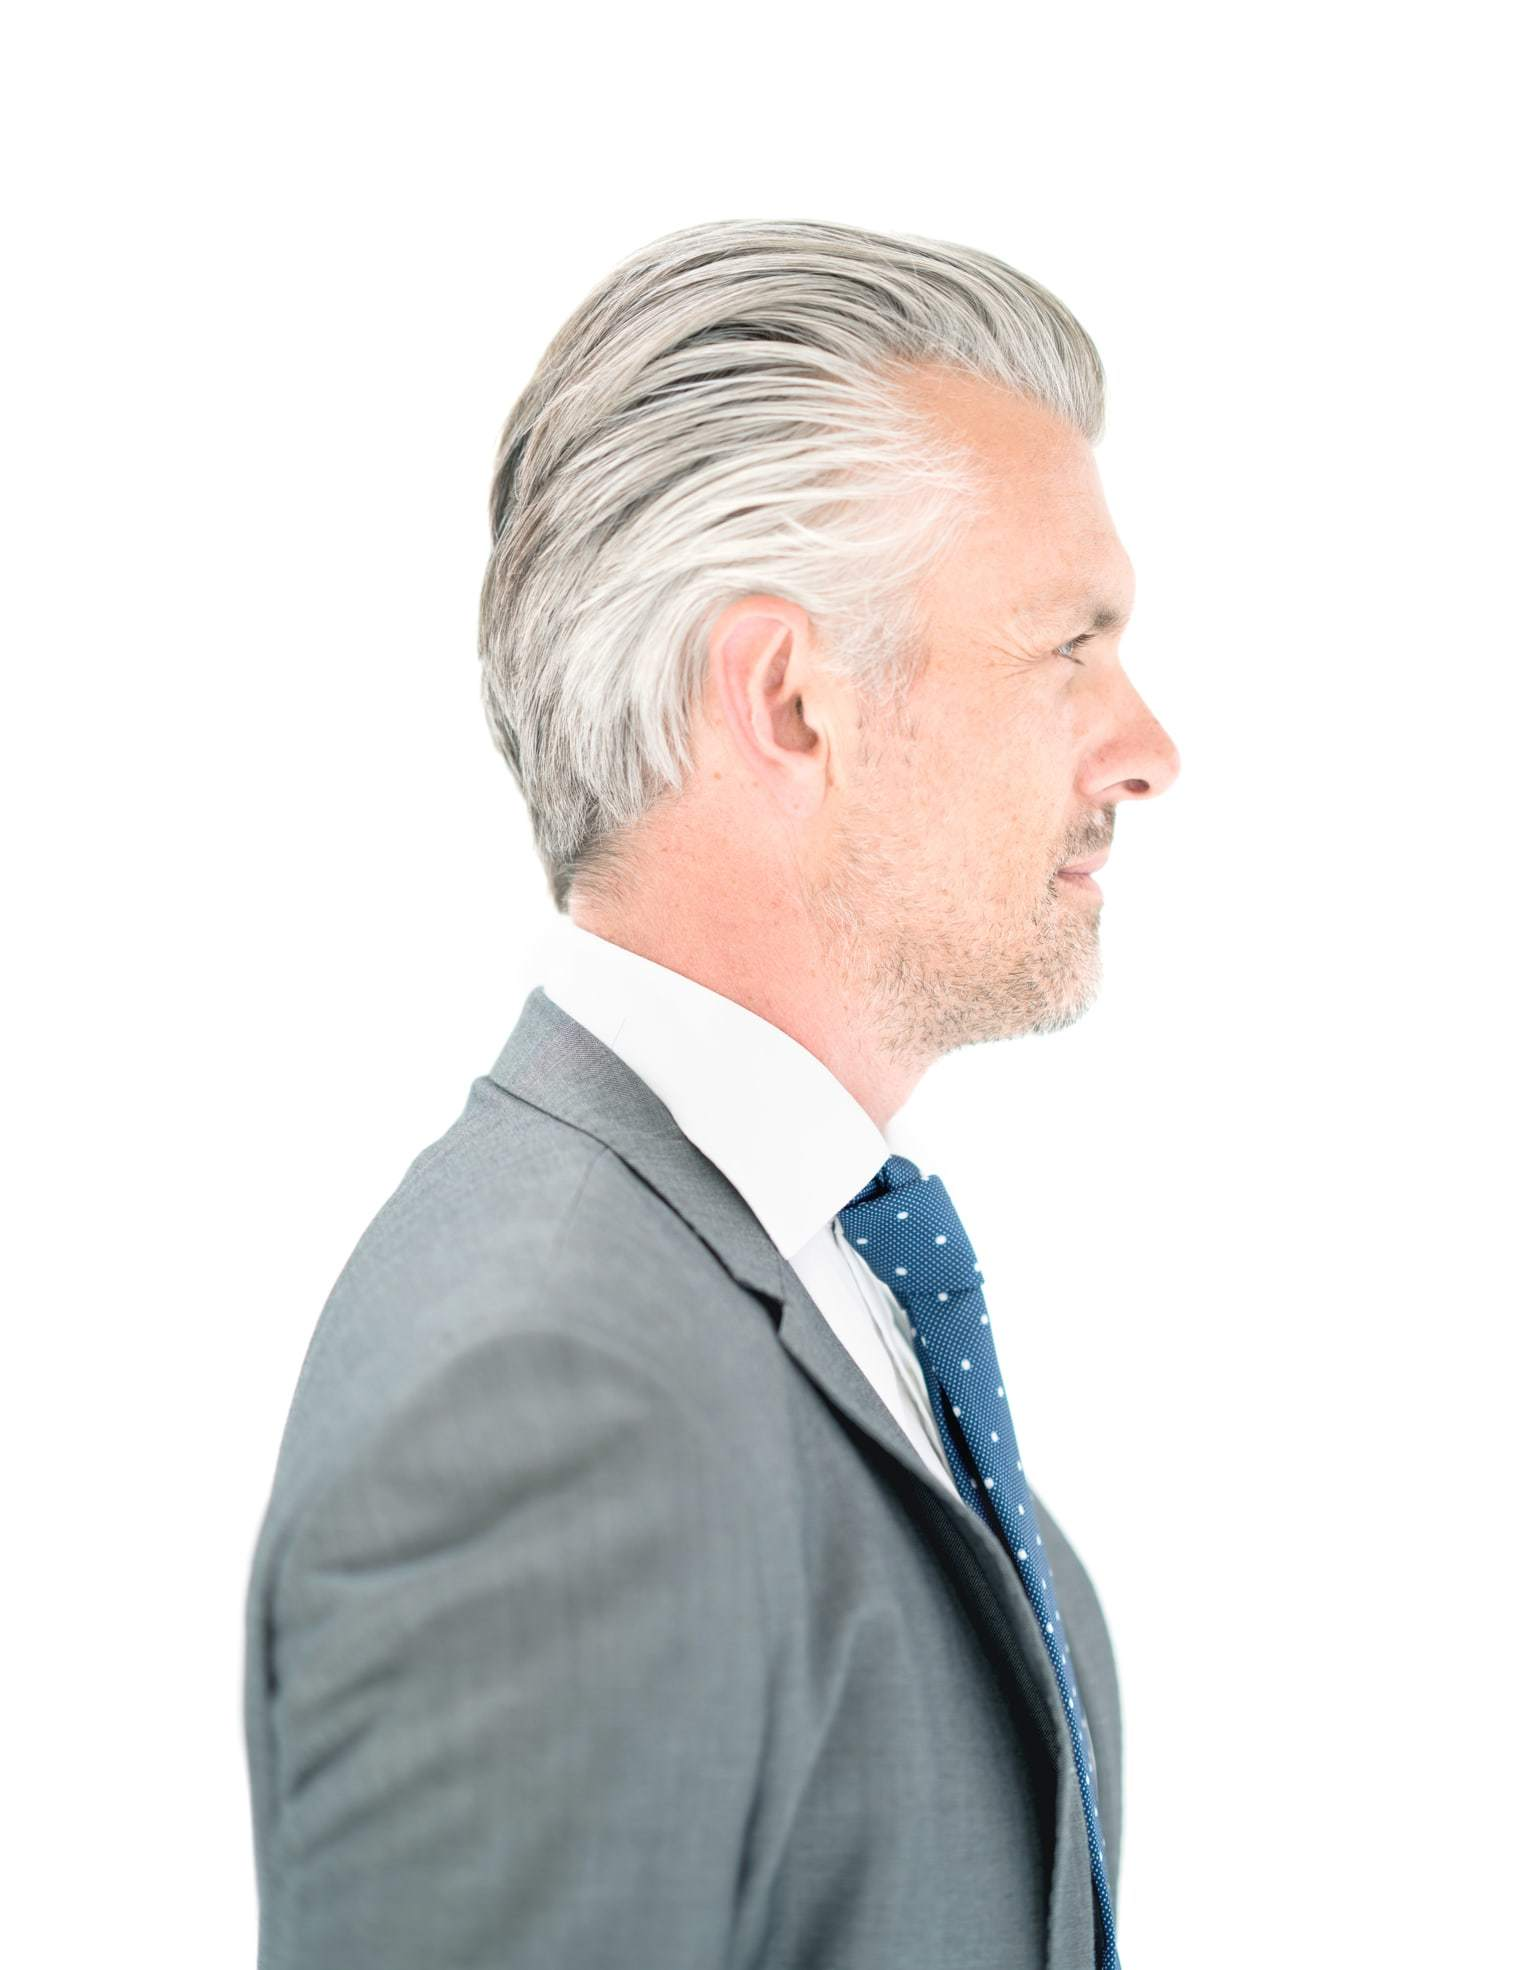 Charming ... Hairstyles For Men Over 50 Slicked Back White